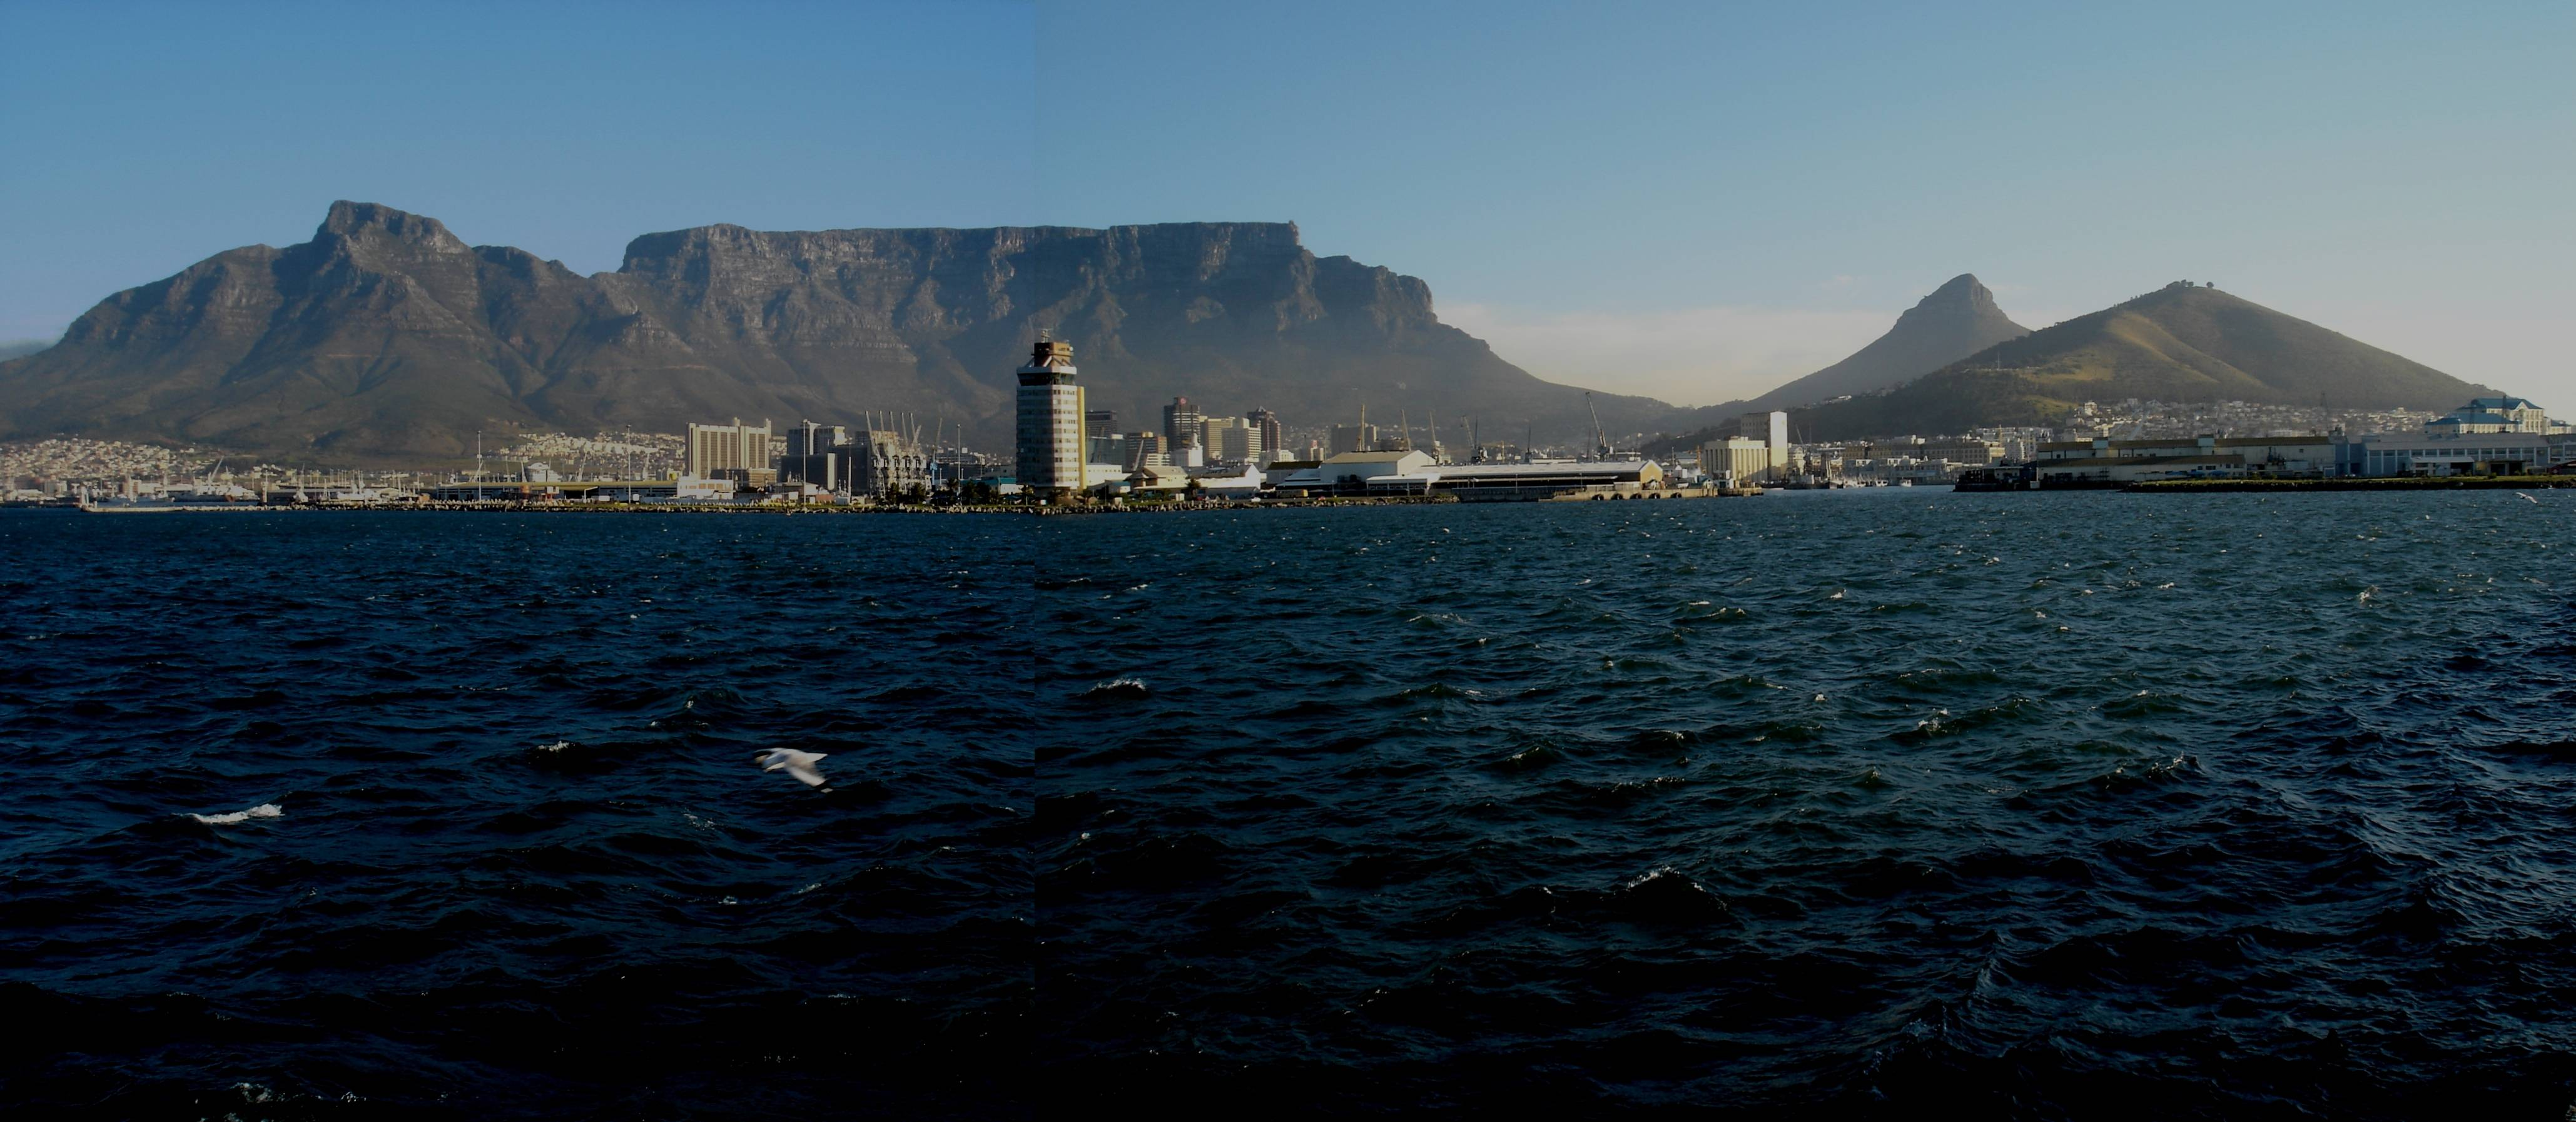 Table Mountain Images Wallpaper WallpaperPC 4118x1794